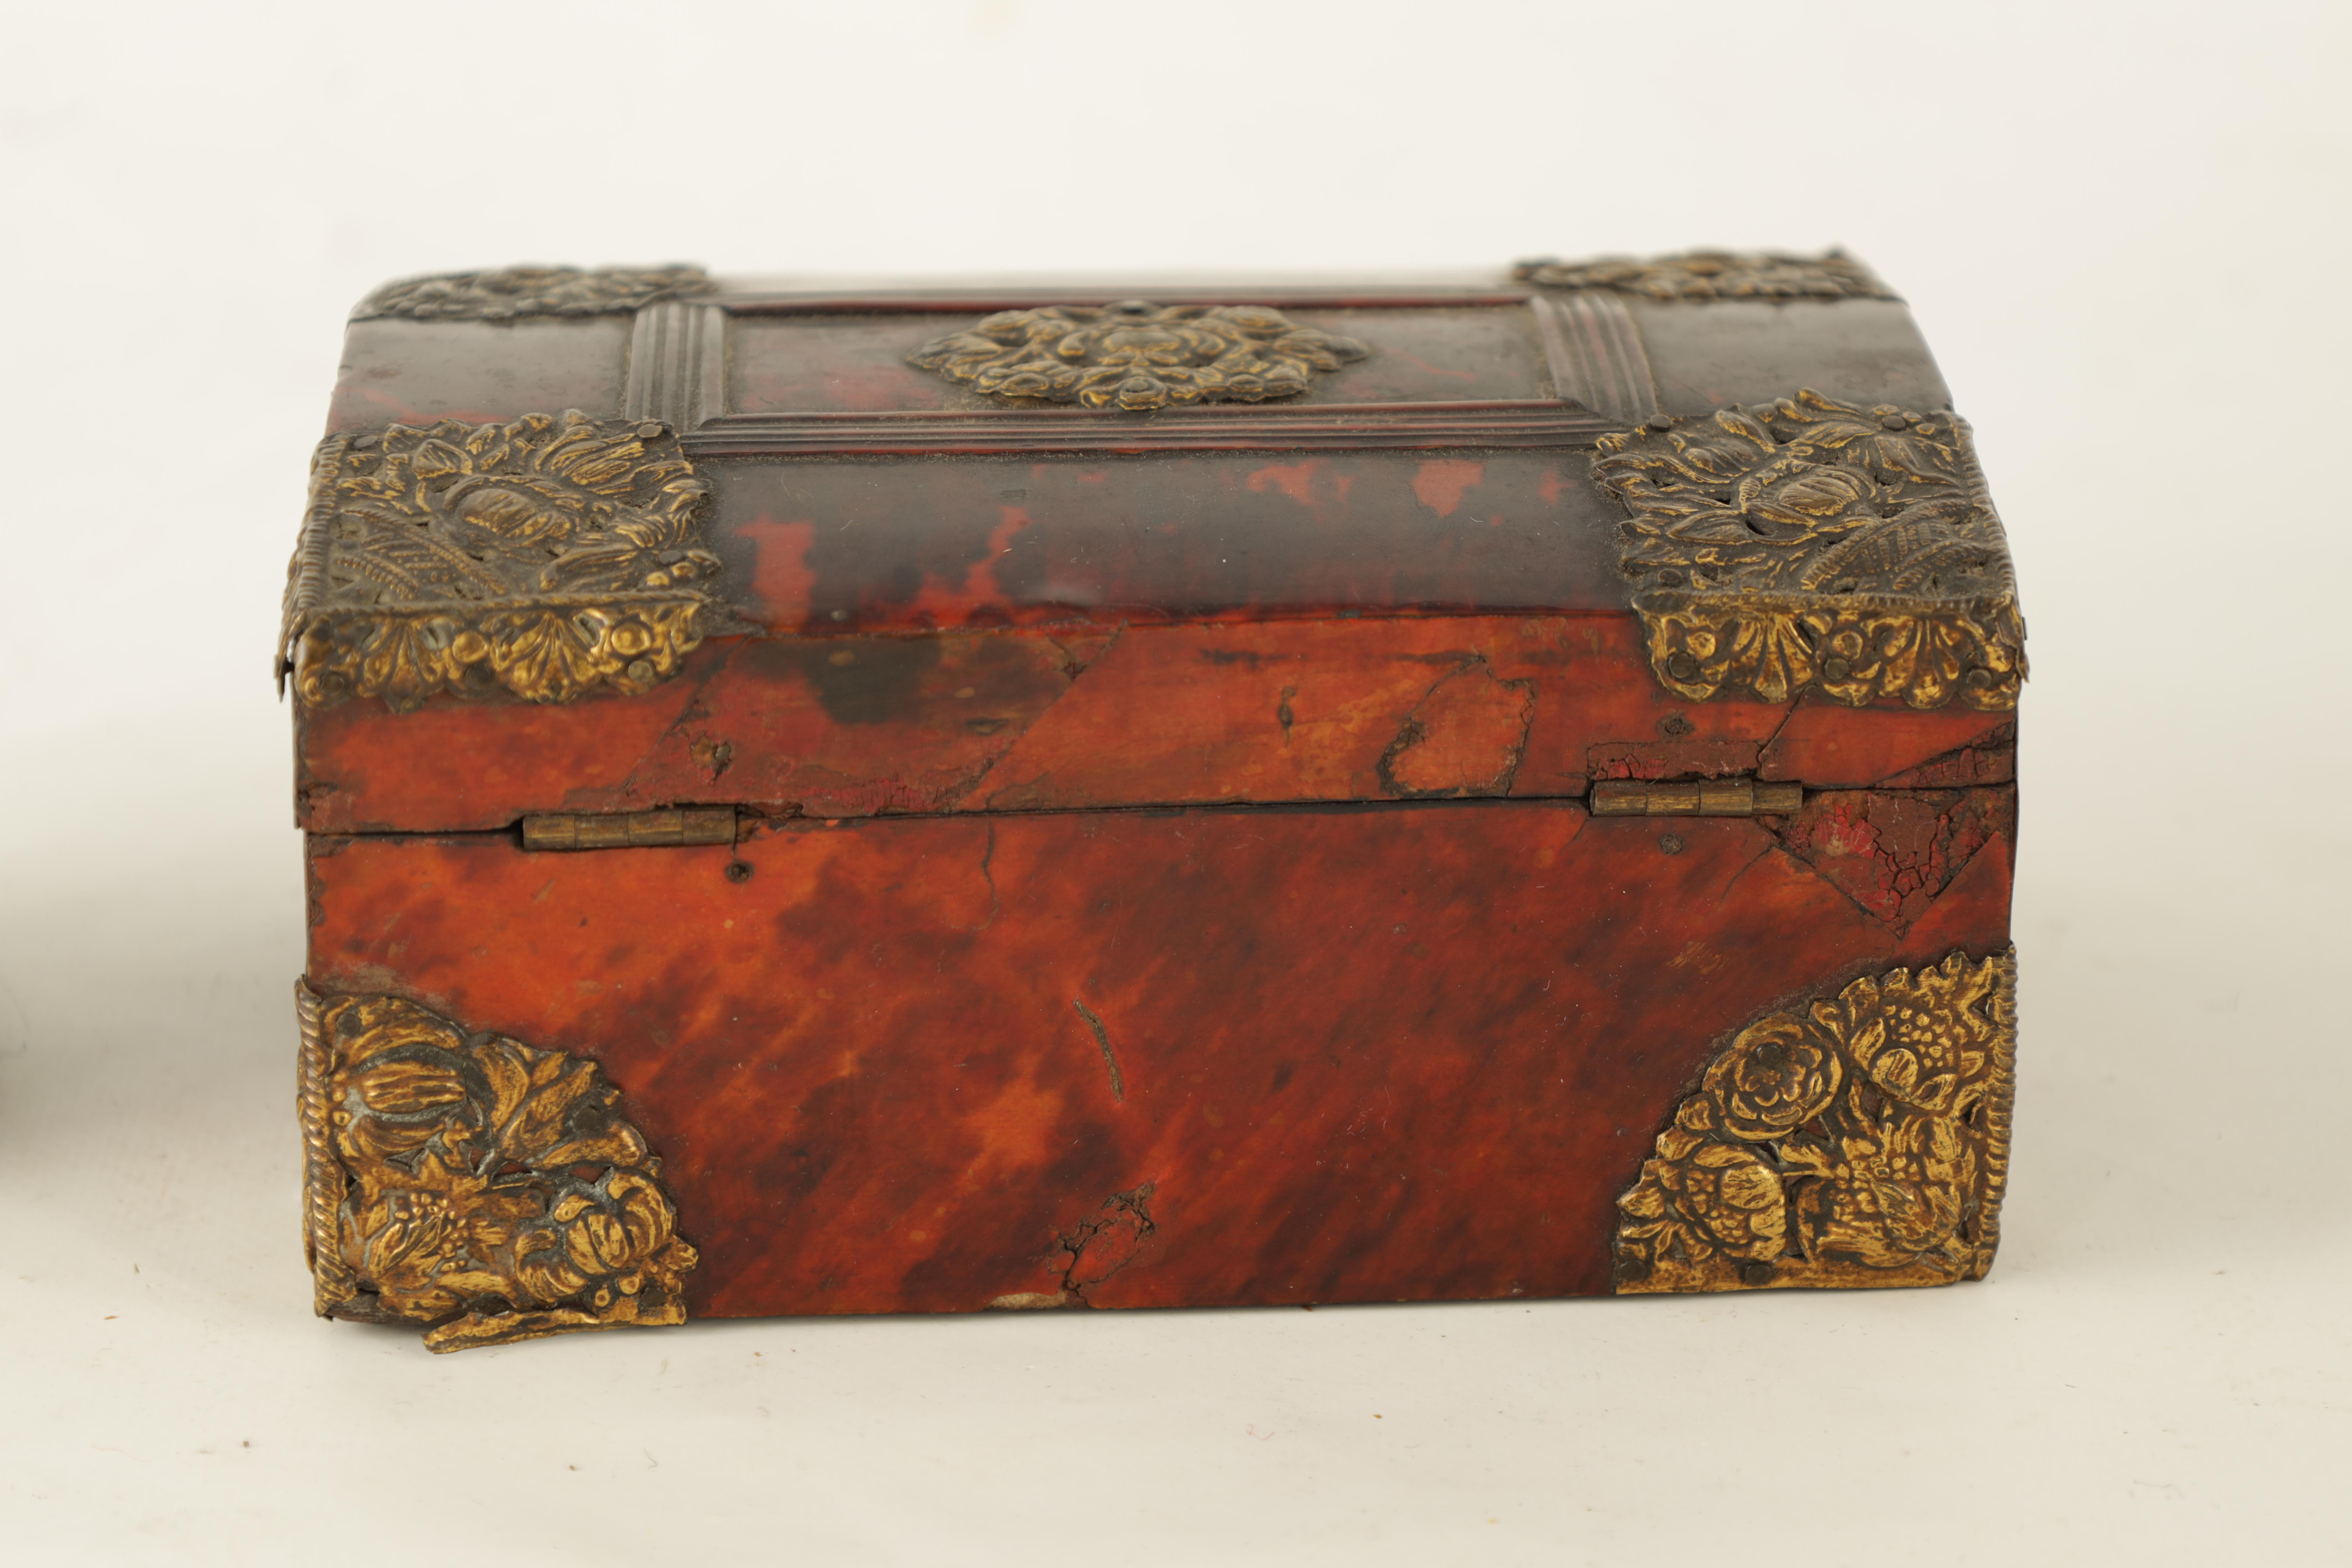 AN 18TH CENTURY DUTCH TORTOISESHELL AND GILT BRASS JEWELLERY BOX with domed locking lid and - Image 5 of 5